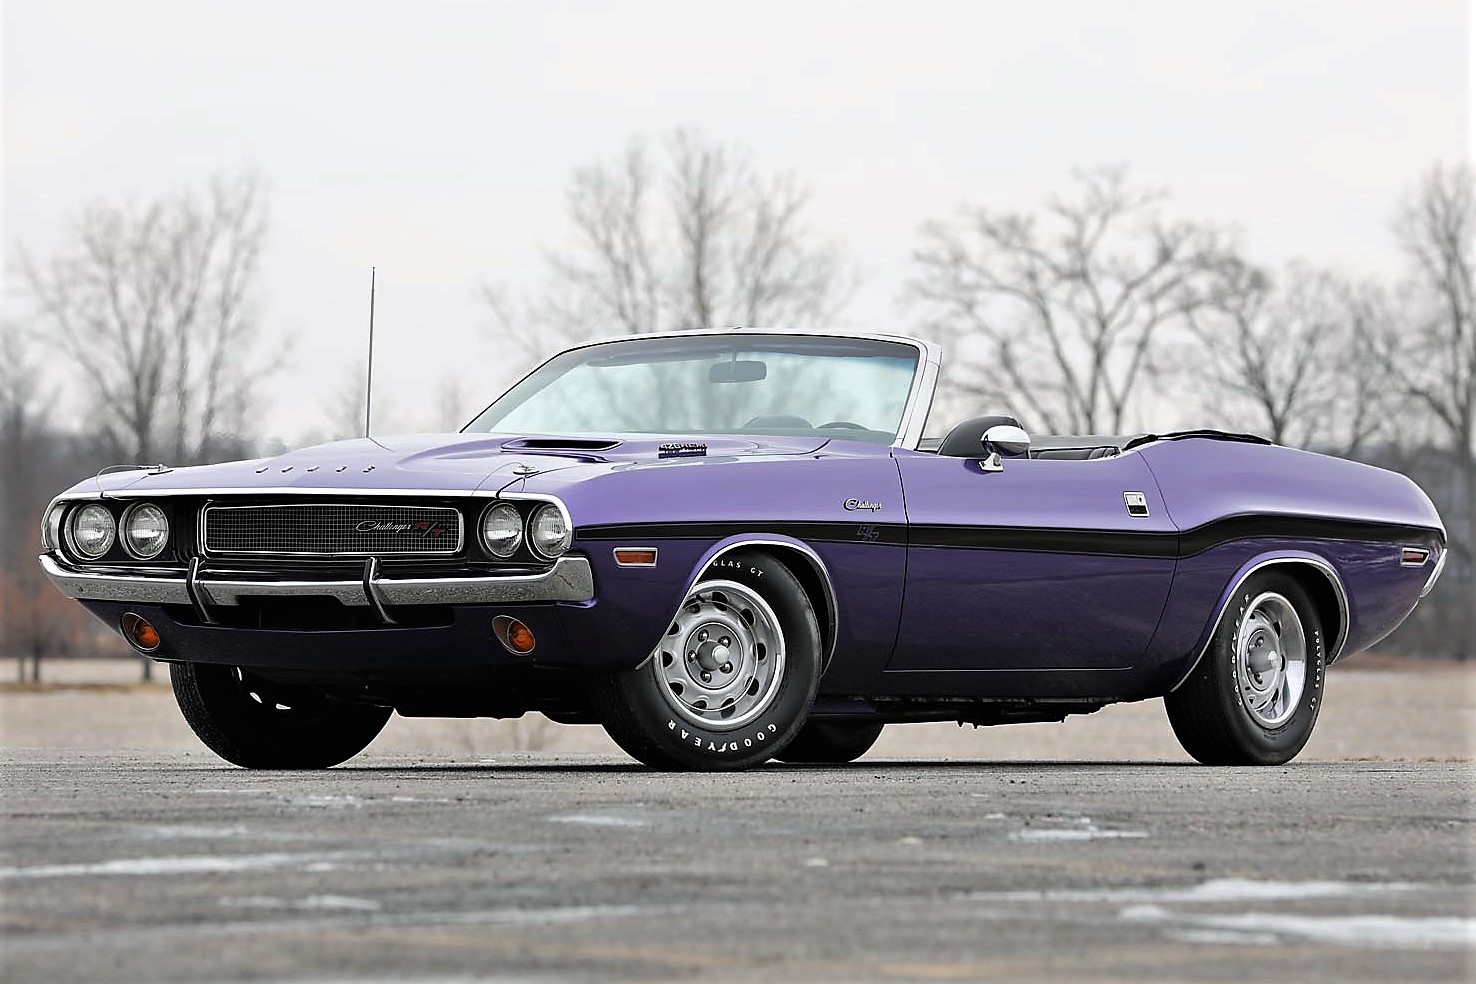 rare hemi muscle times three at worldwide's scottsdale auction